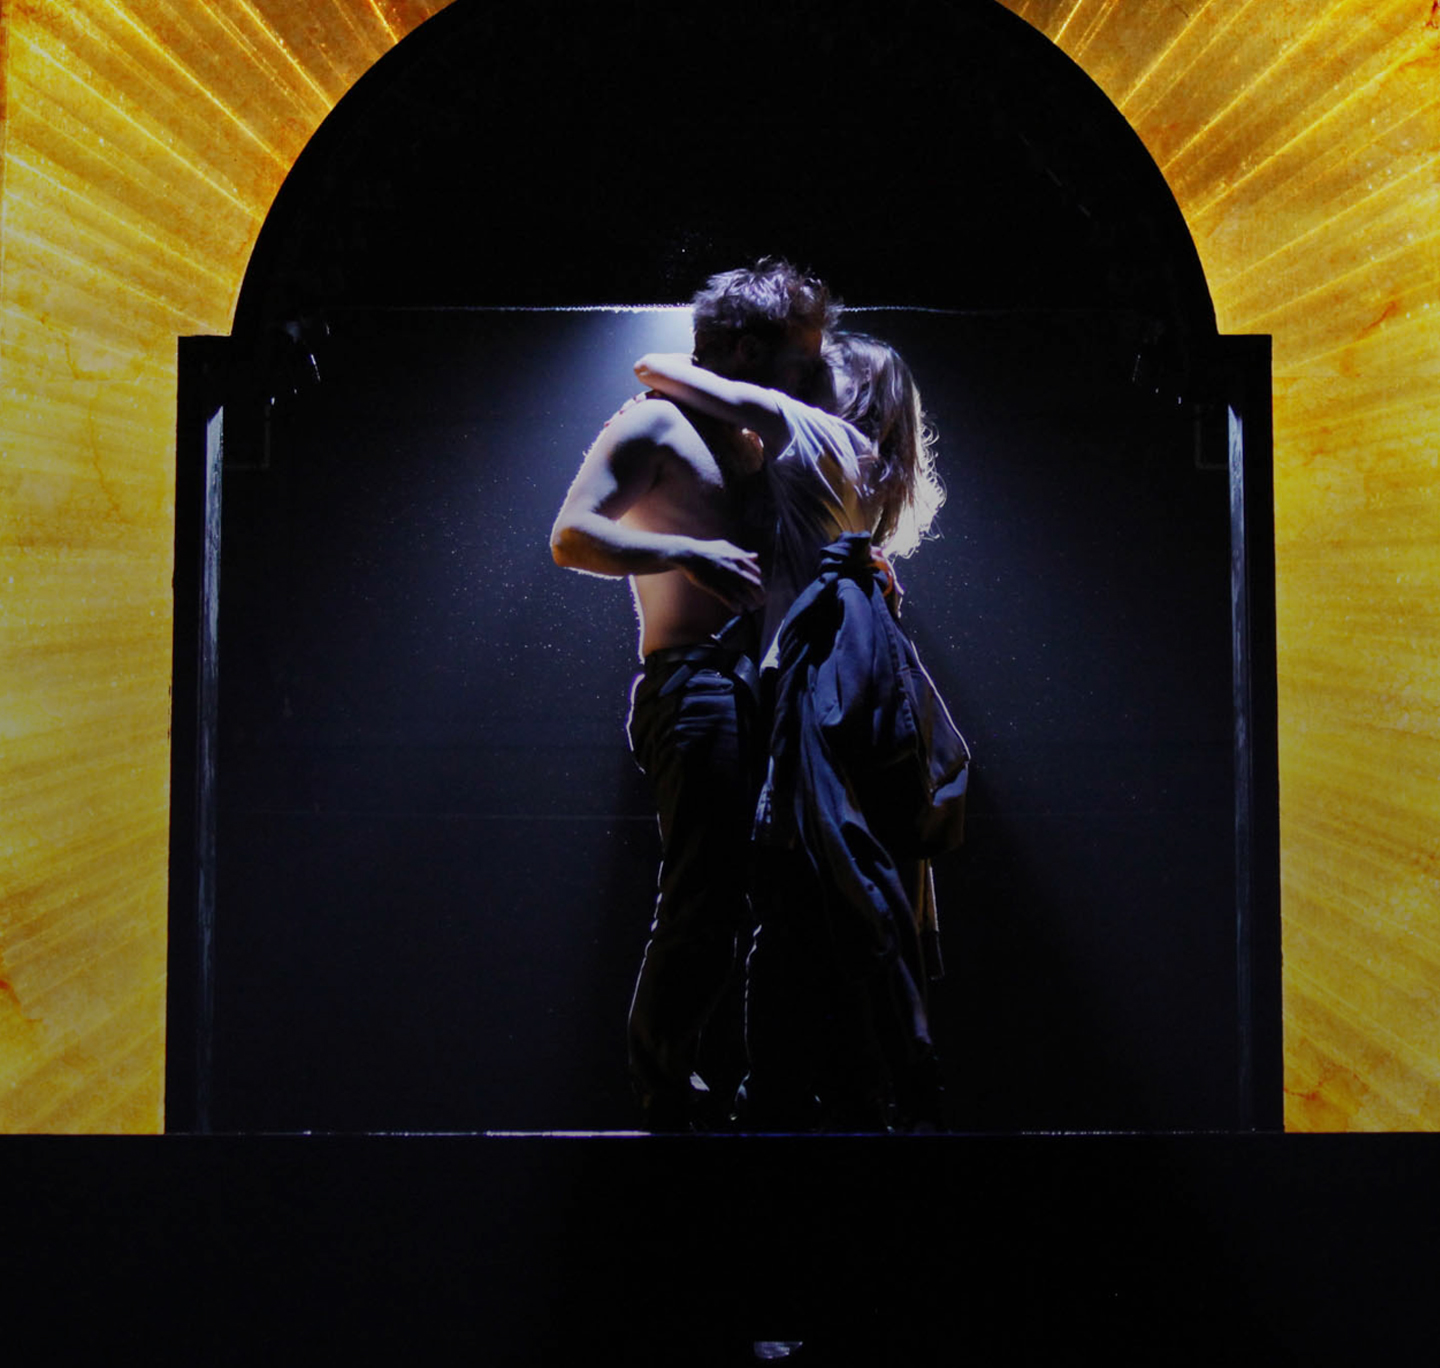 Man and women kiss on stage